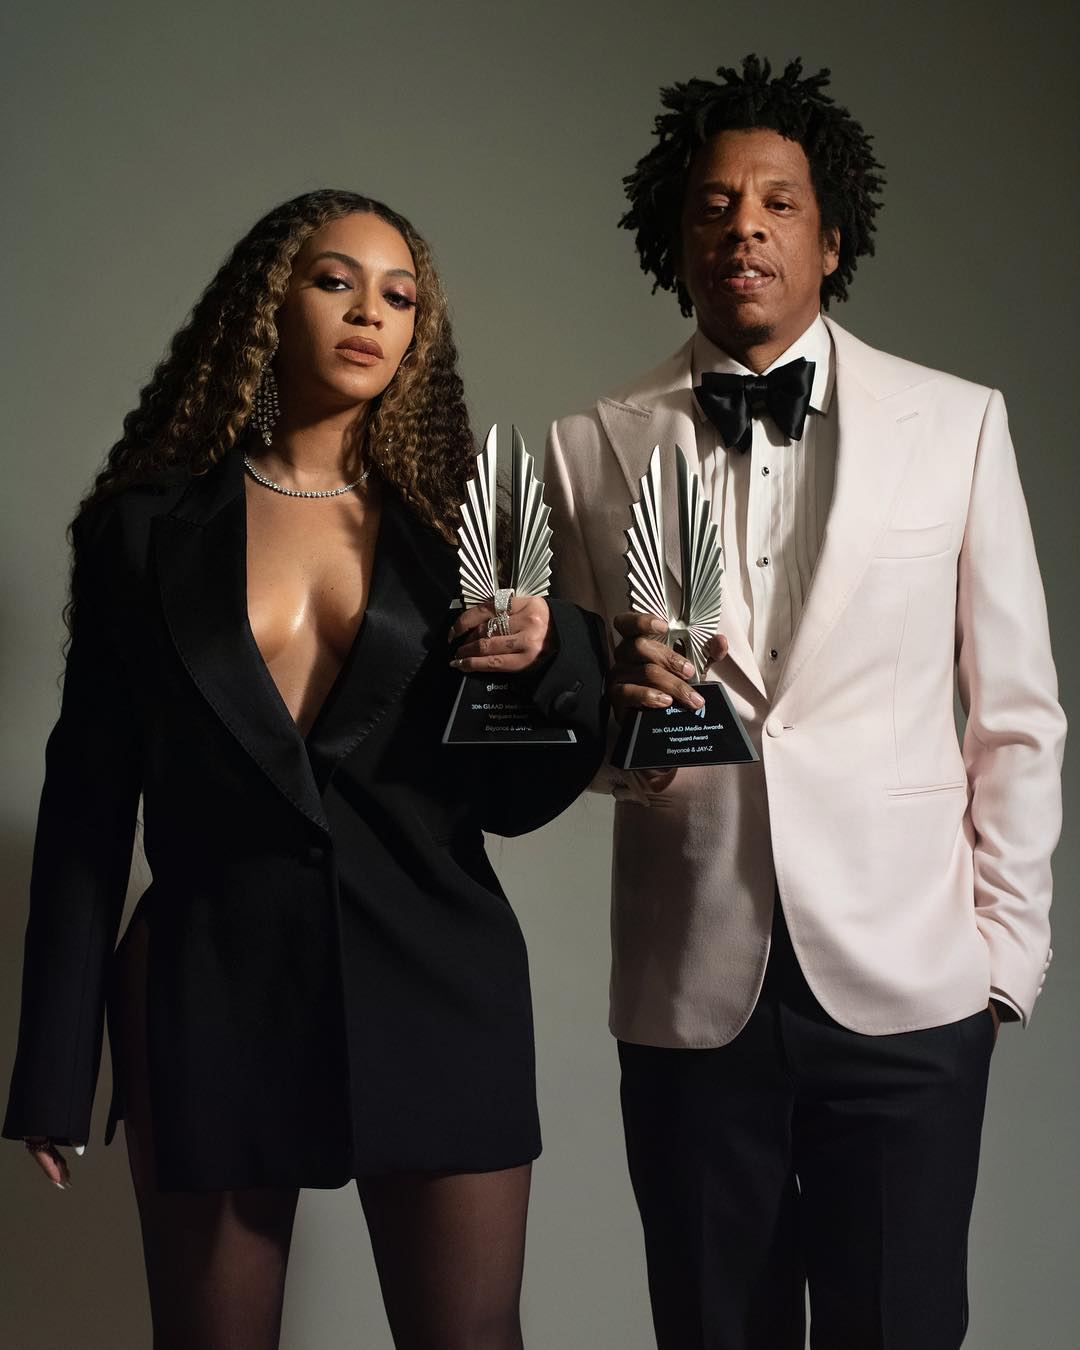 Beyonce and Jay-Z with their GLAAD Vanguard Award, which they were presented for their purported work as LGBTQ Allies